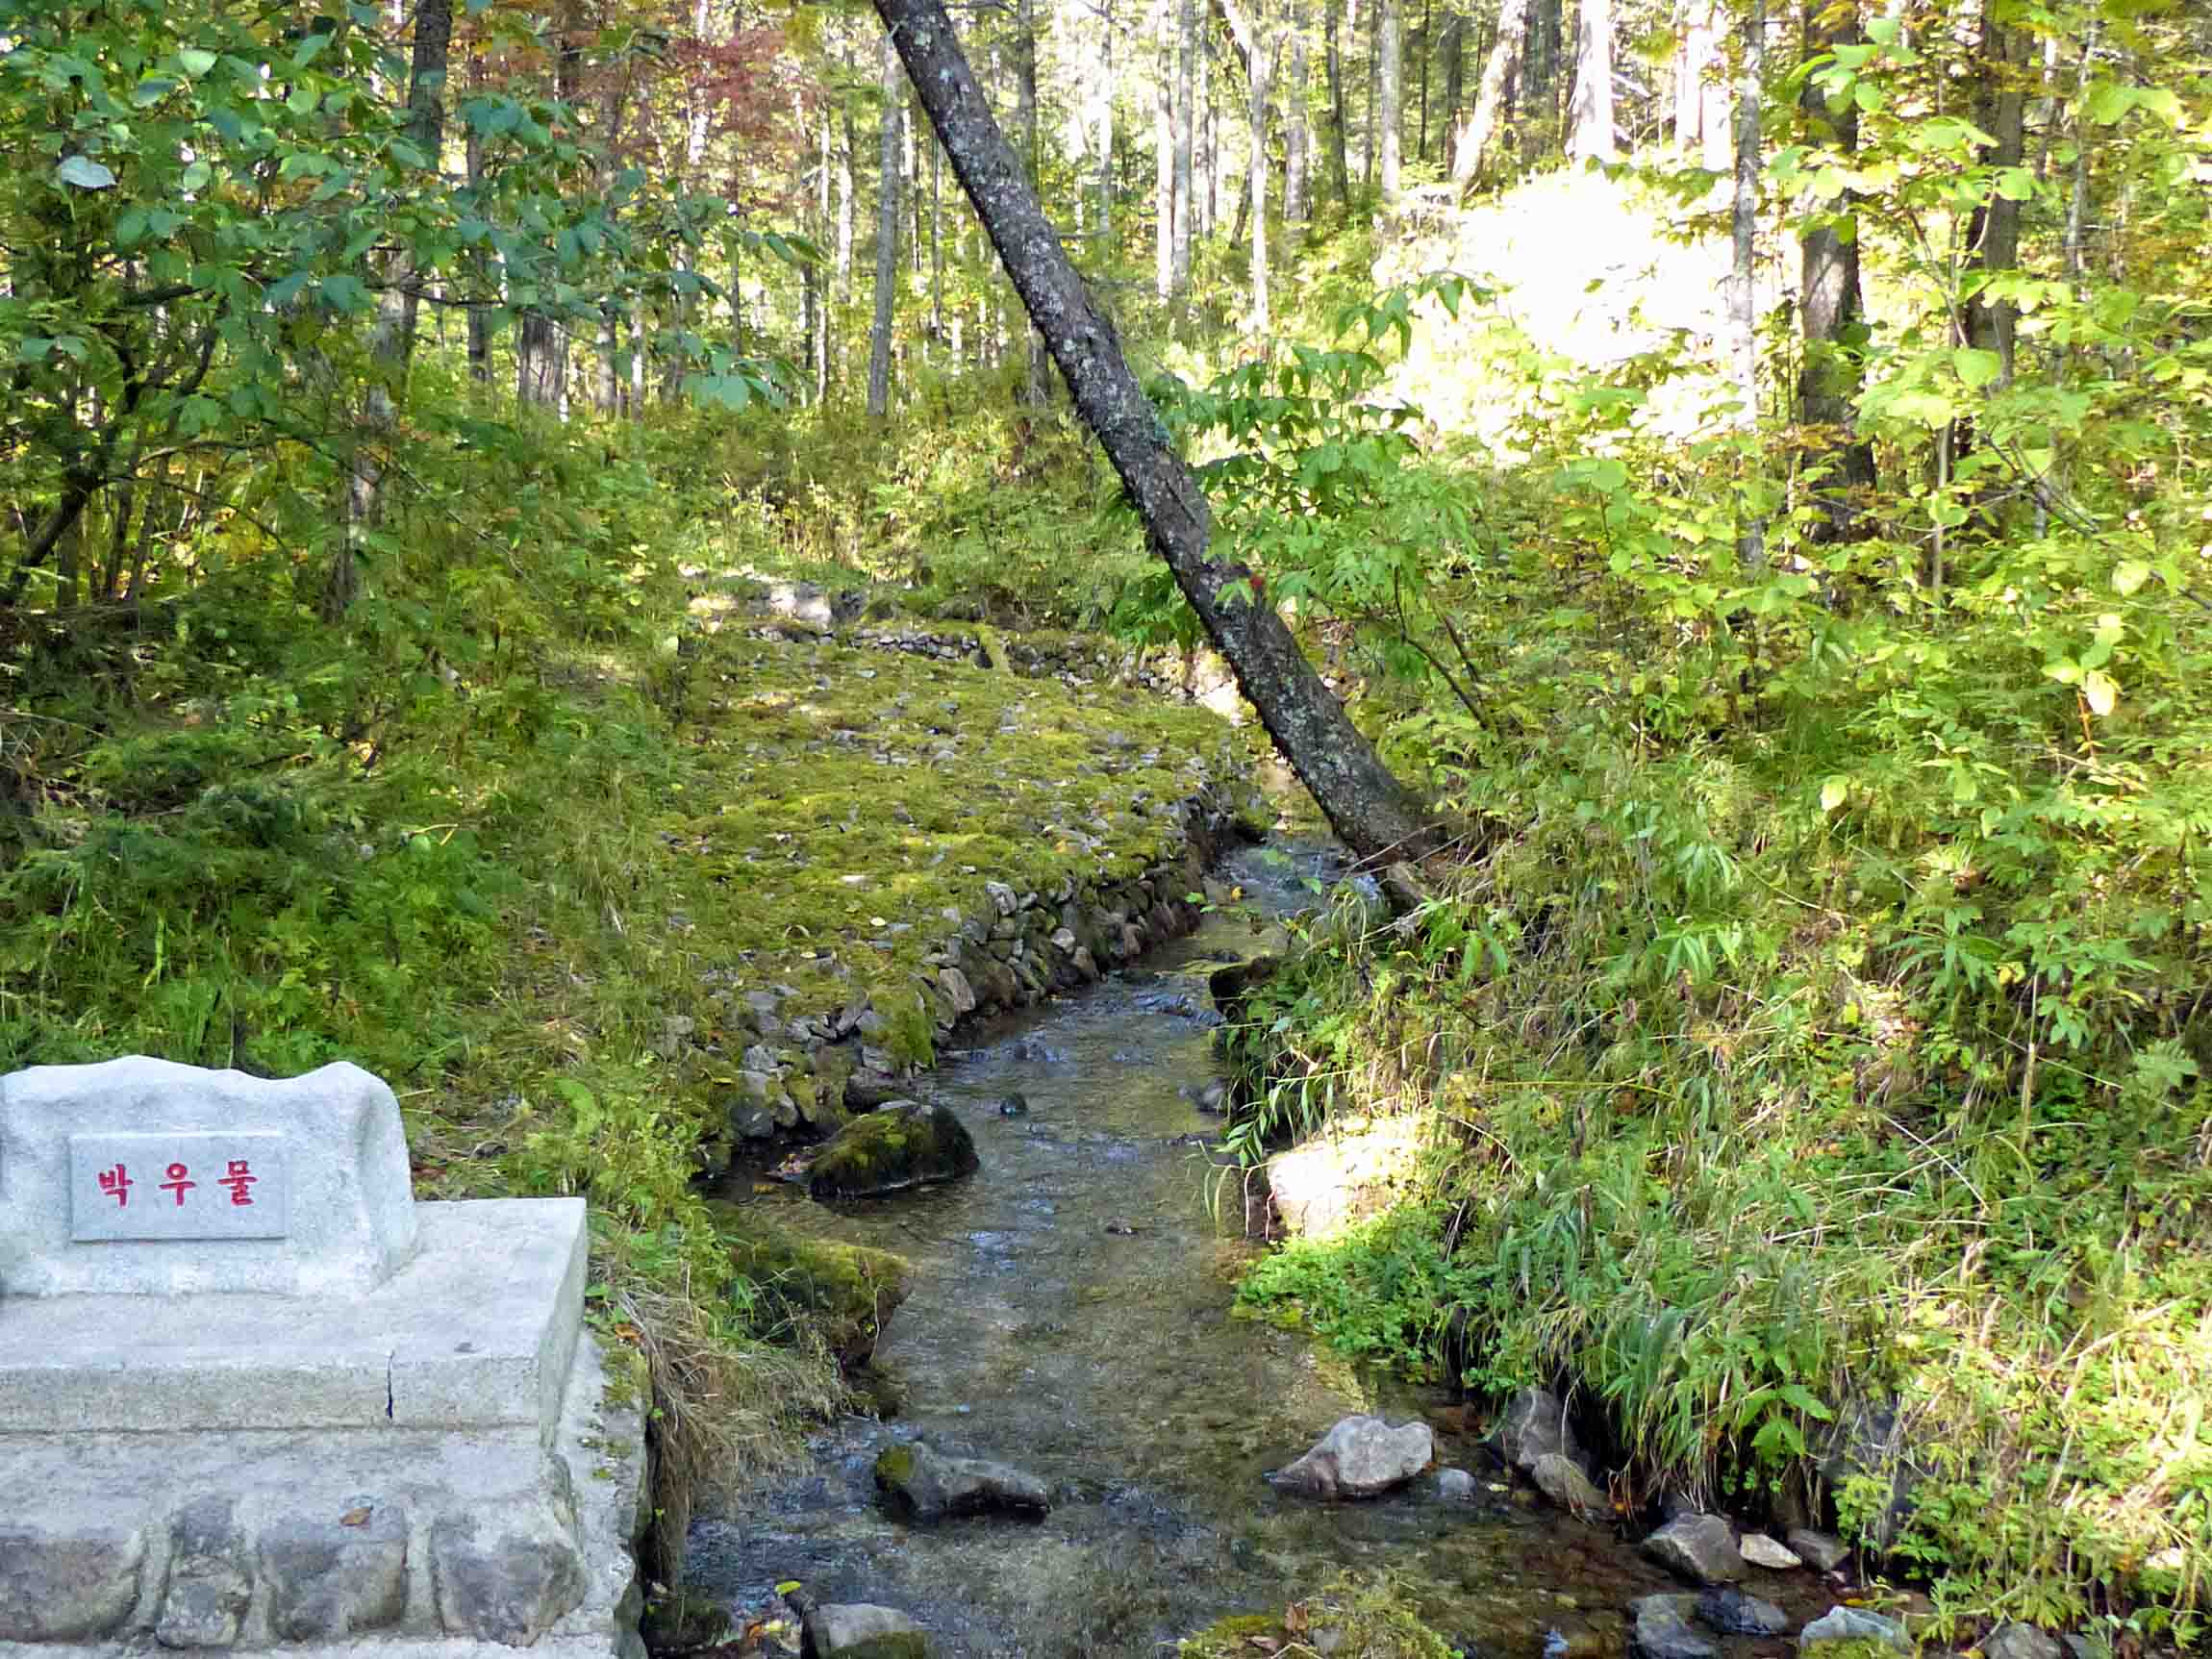 Tall trees and small stream with engraved stone